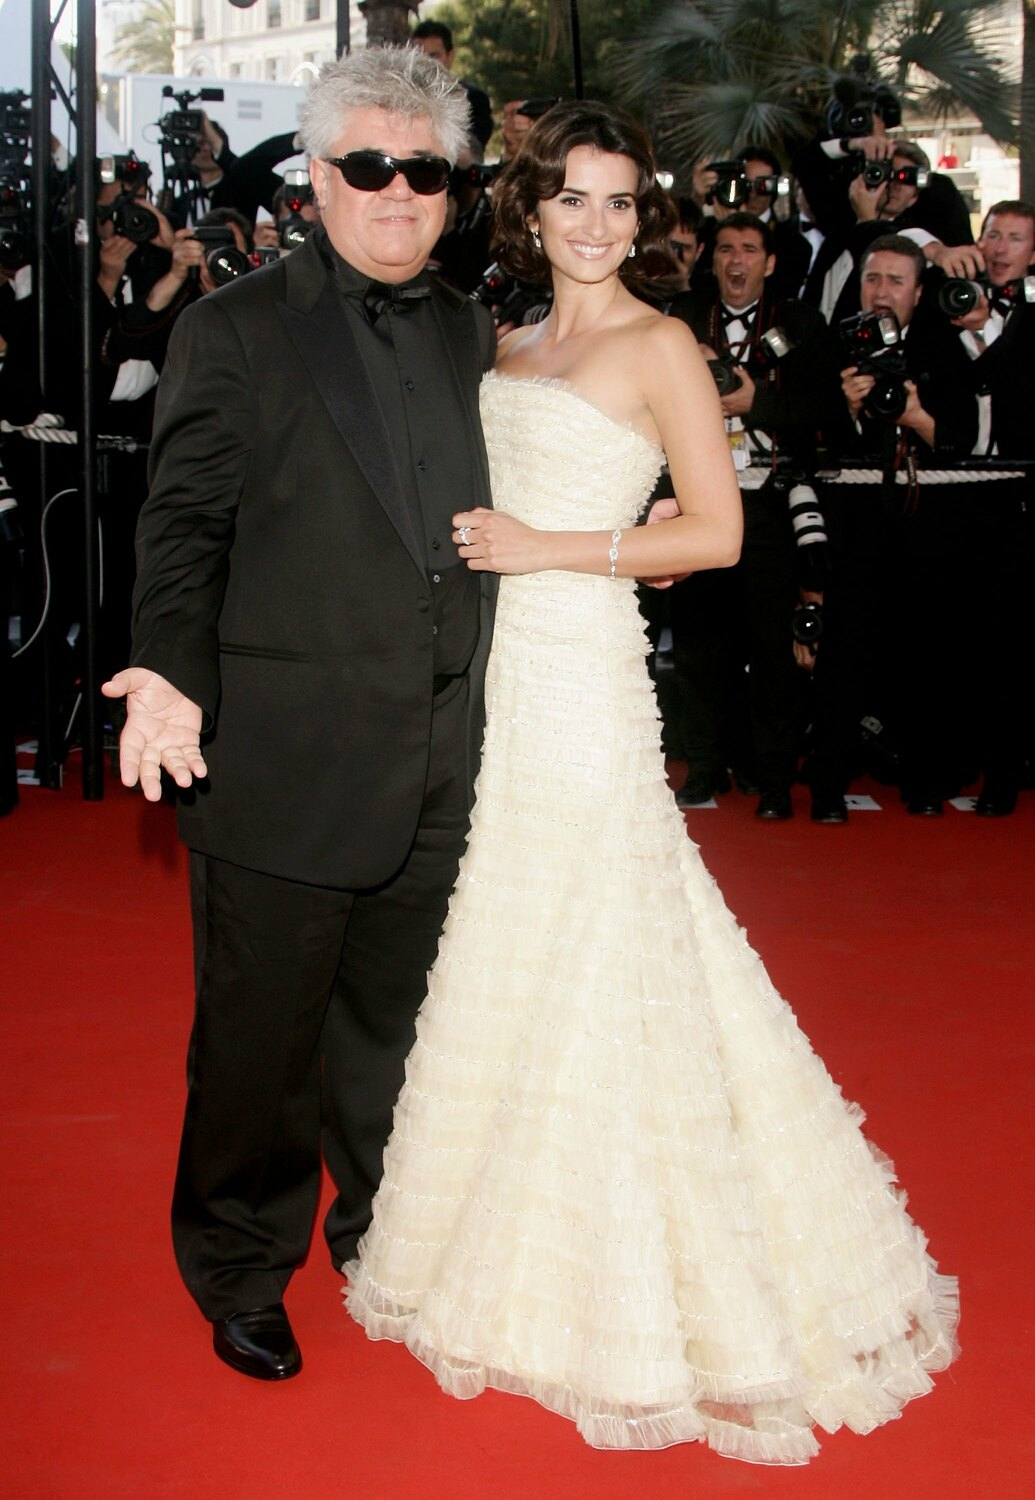 CANNES, FRANCE - MAY 19:  Spanish actress Penelope Cruz and spanish director Pedro Almodovar attend the 'Volver' premiere at the Palais des Festivals during the 59th International Cannes Film Festival May 19, 2006 in Cannes, France.  (Photo by Pascal Le Segretain/Getty Images)